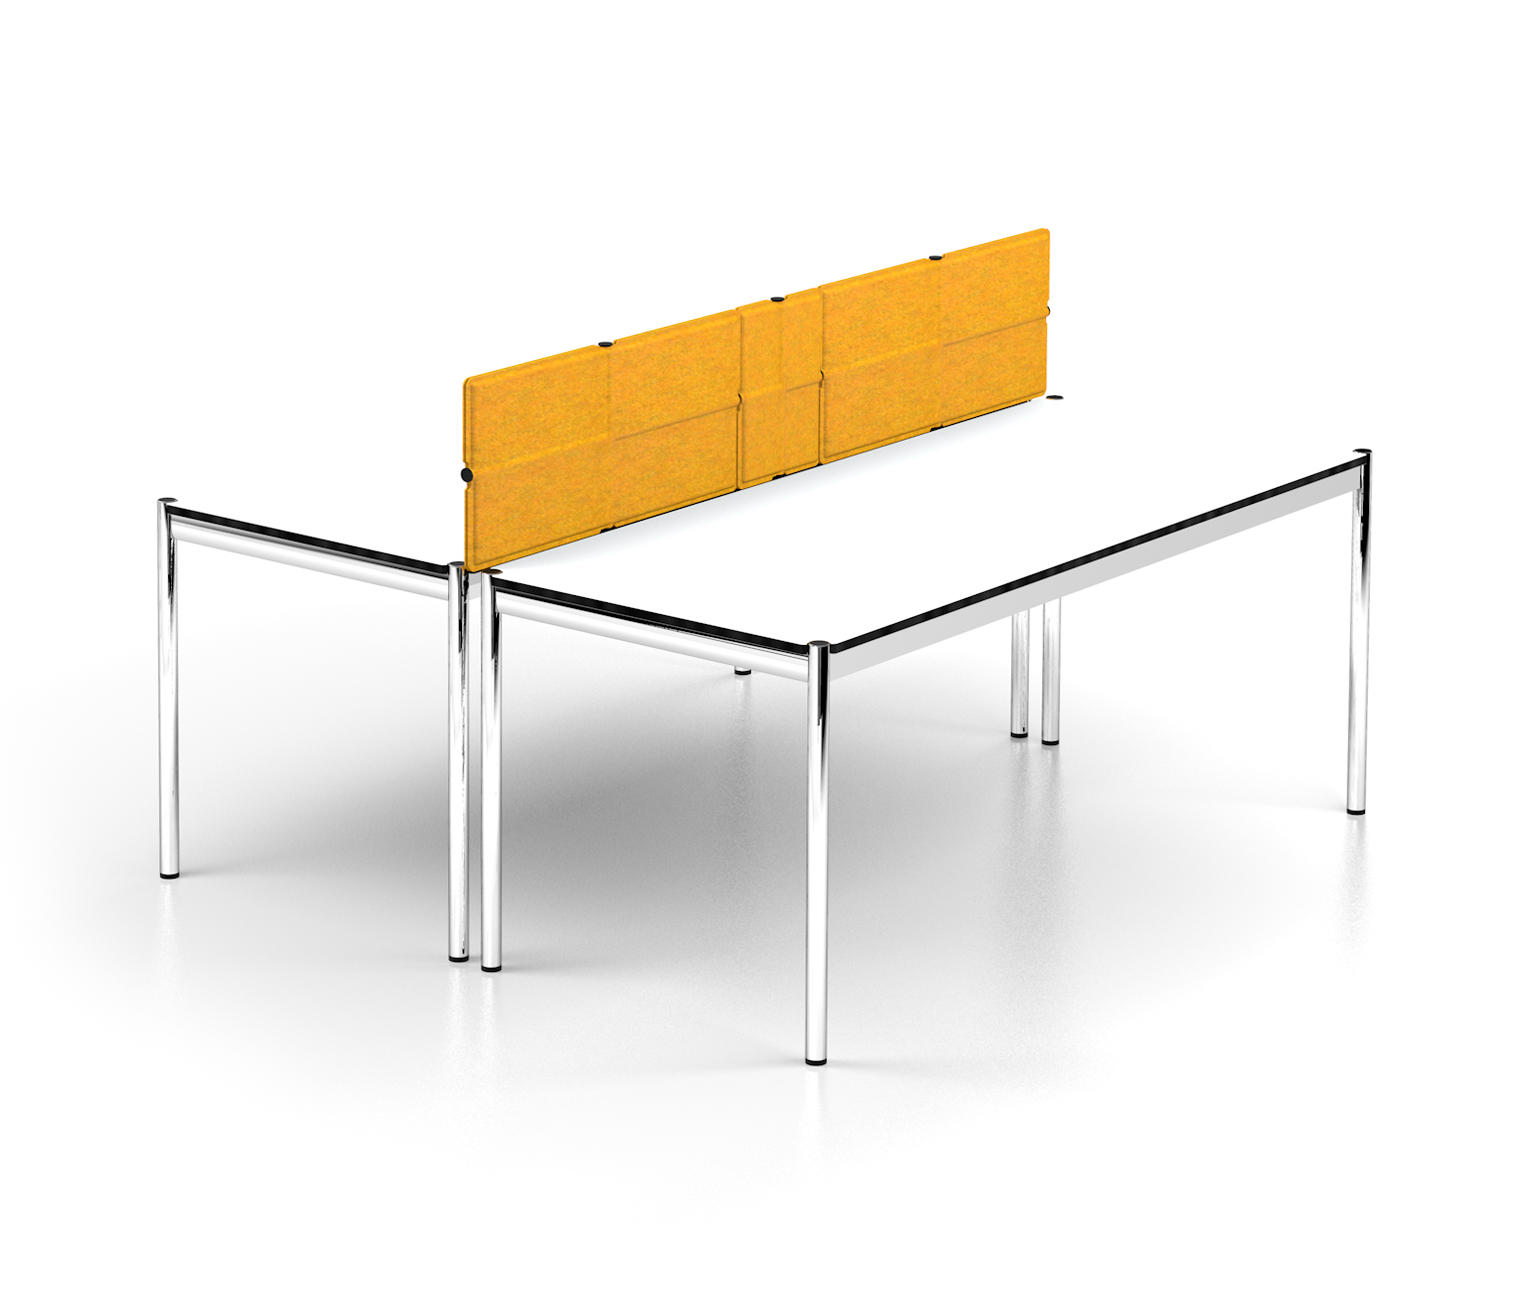 Charmant USM Privacy Panels By USM | Table Dividers ...